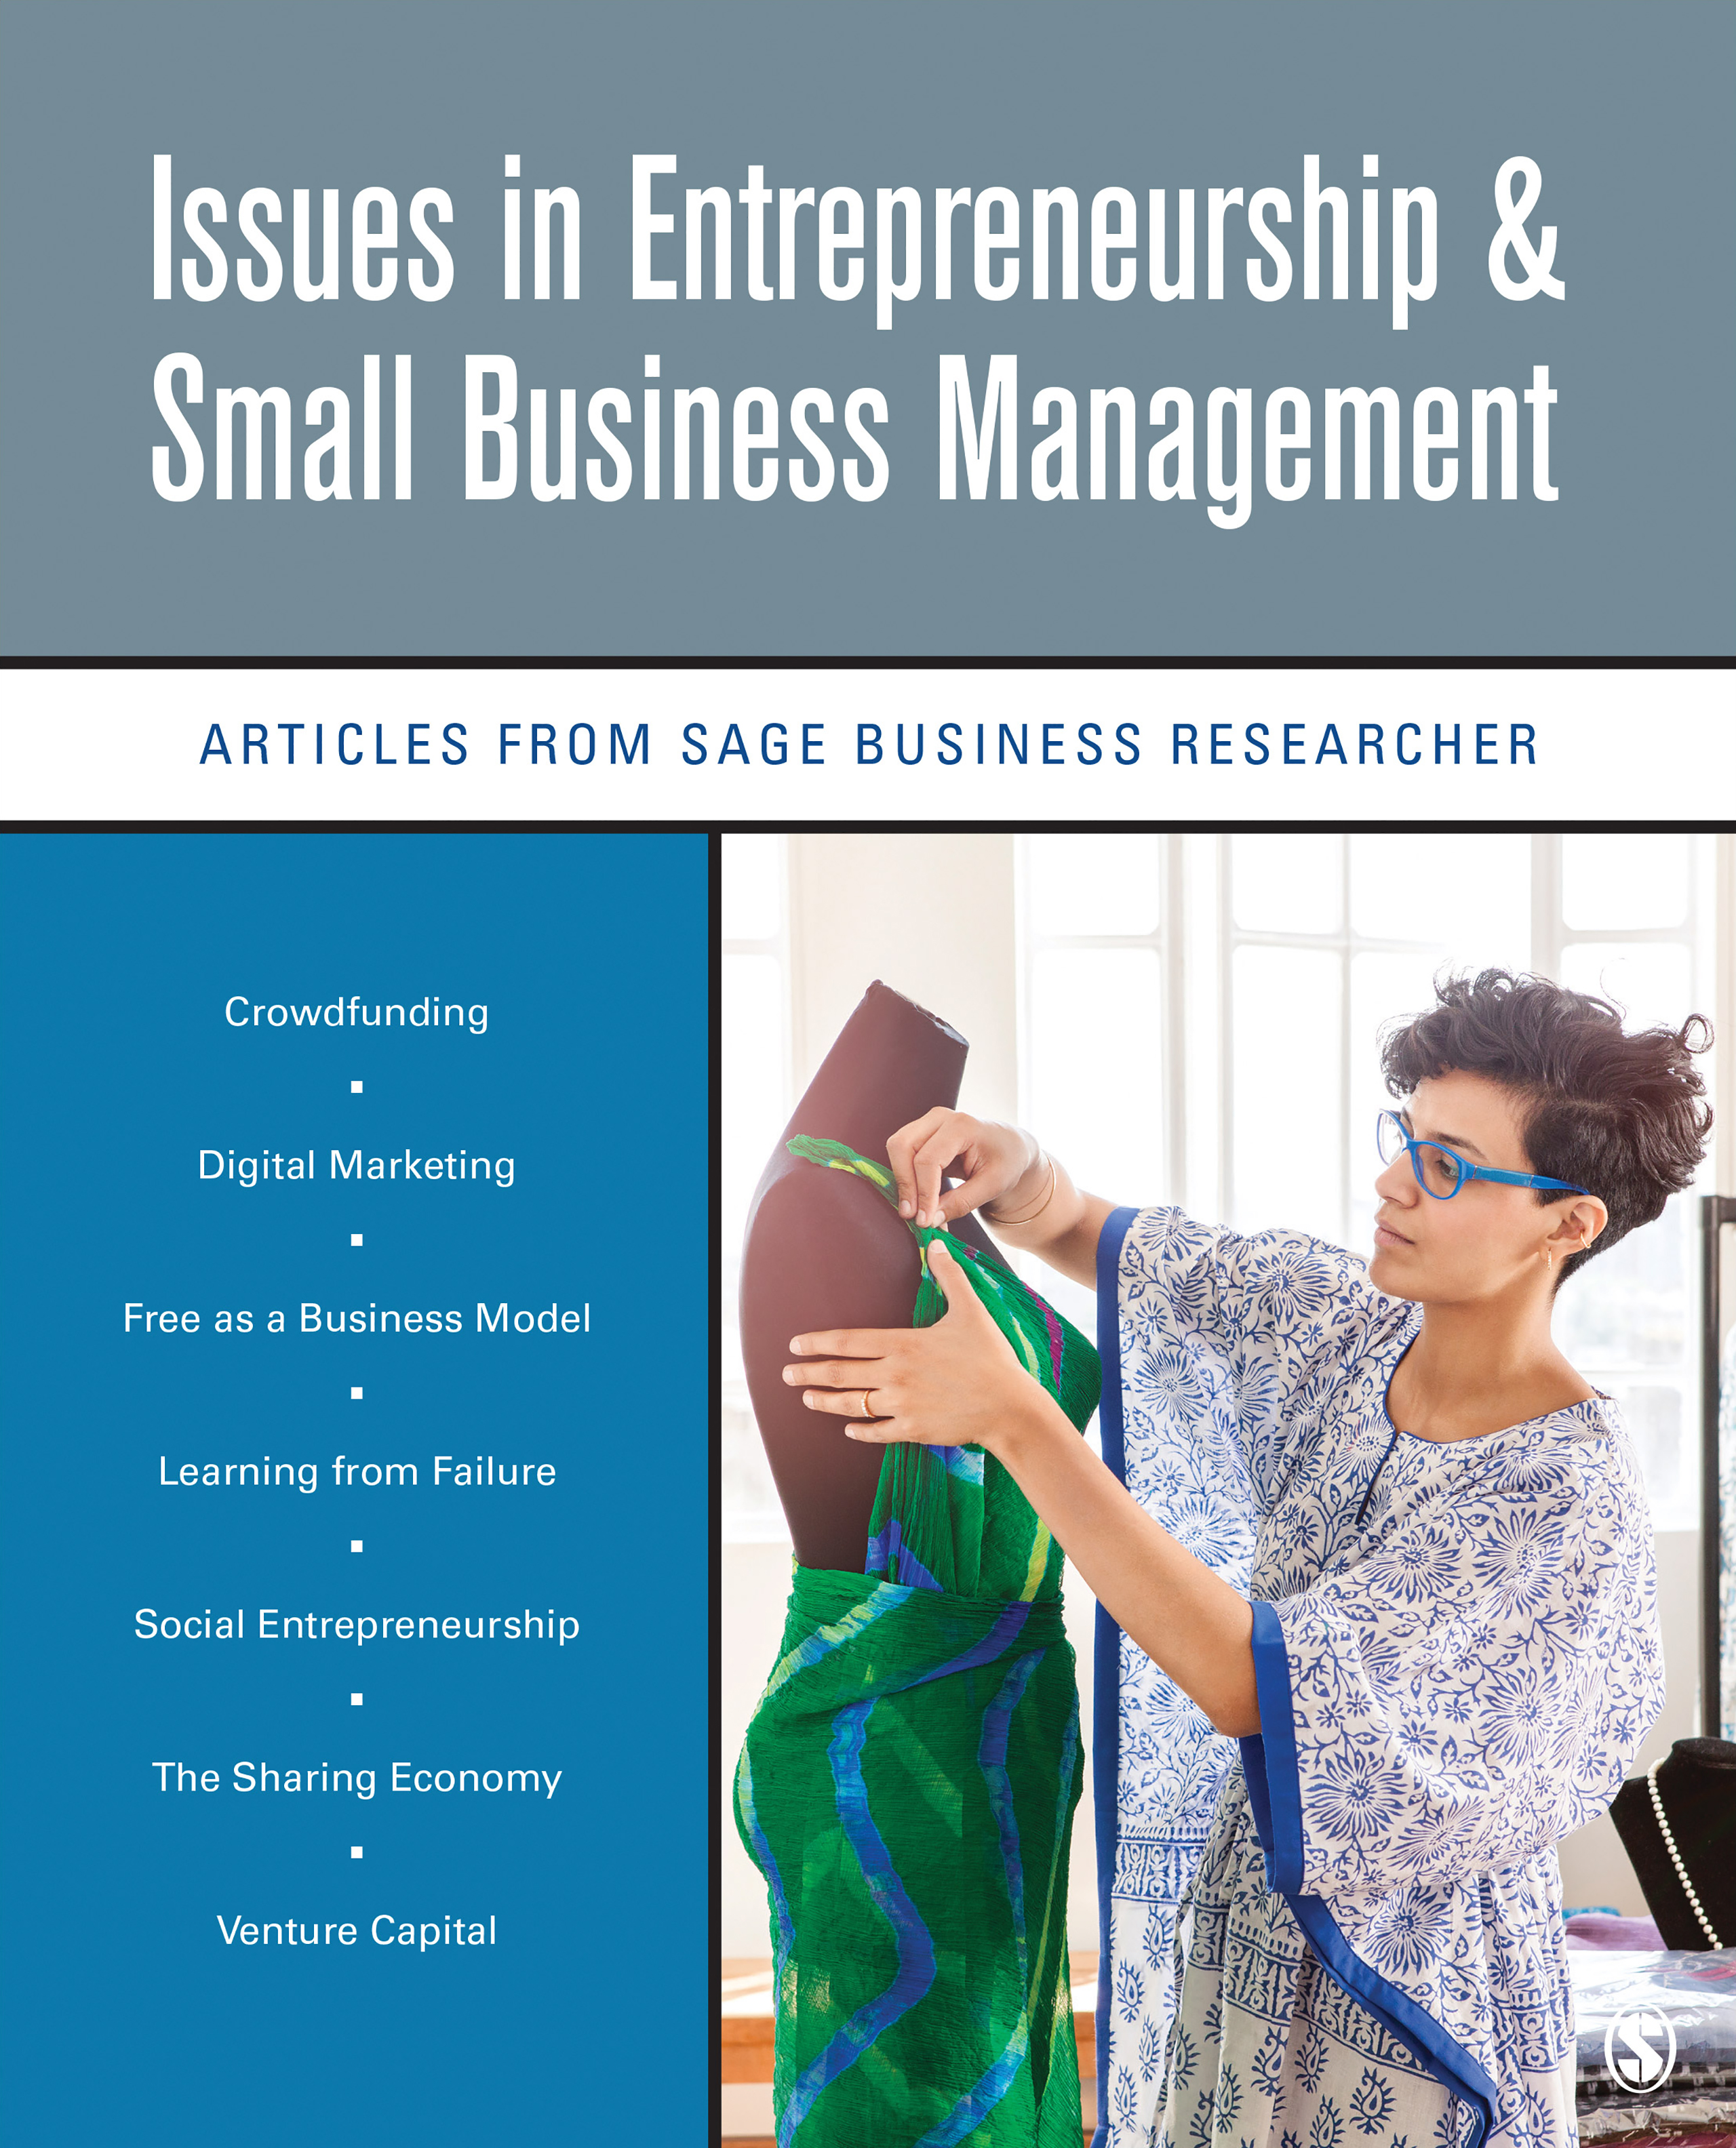 Download Ebook Issues in Entrepreneurship & Small Business Management by SAGE Business Researcher Pdf